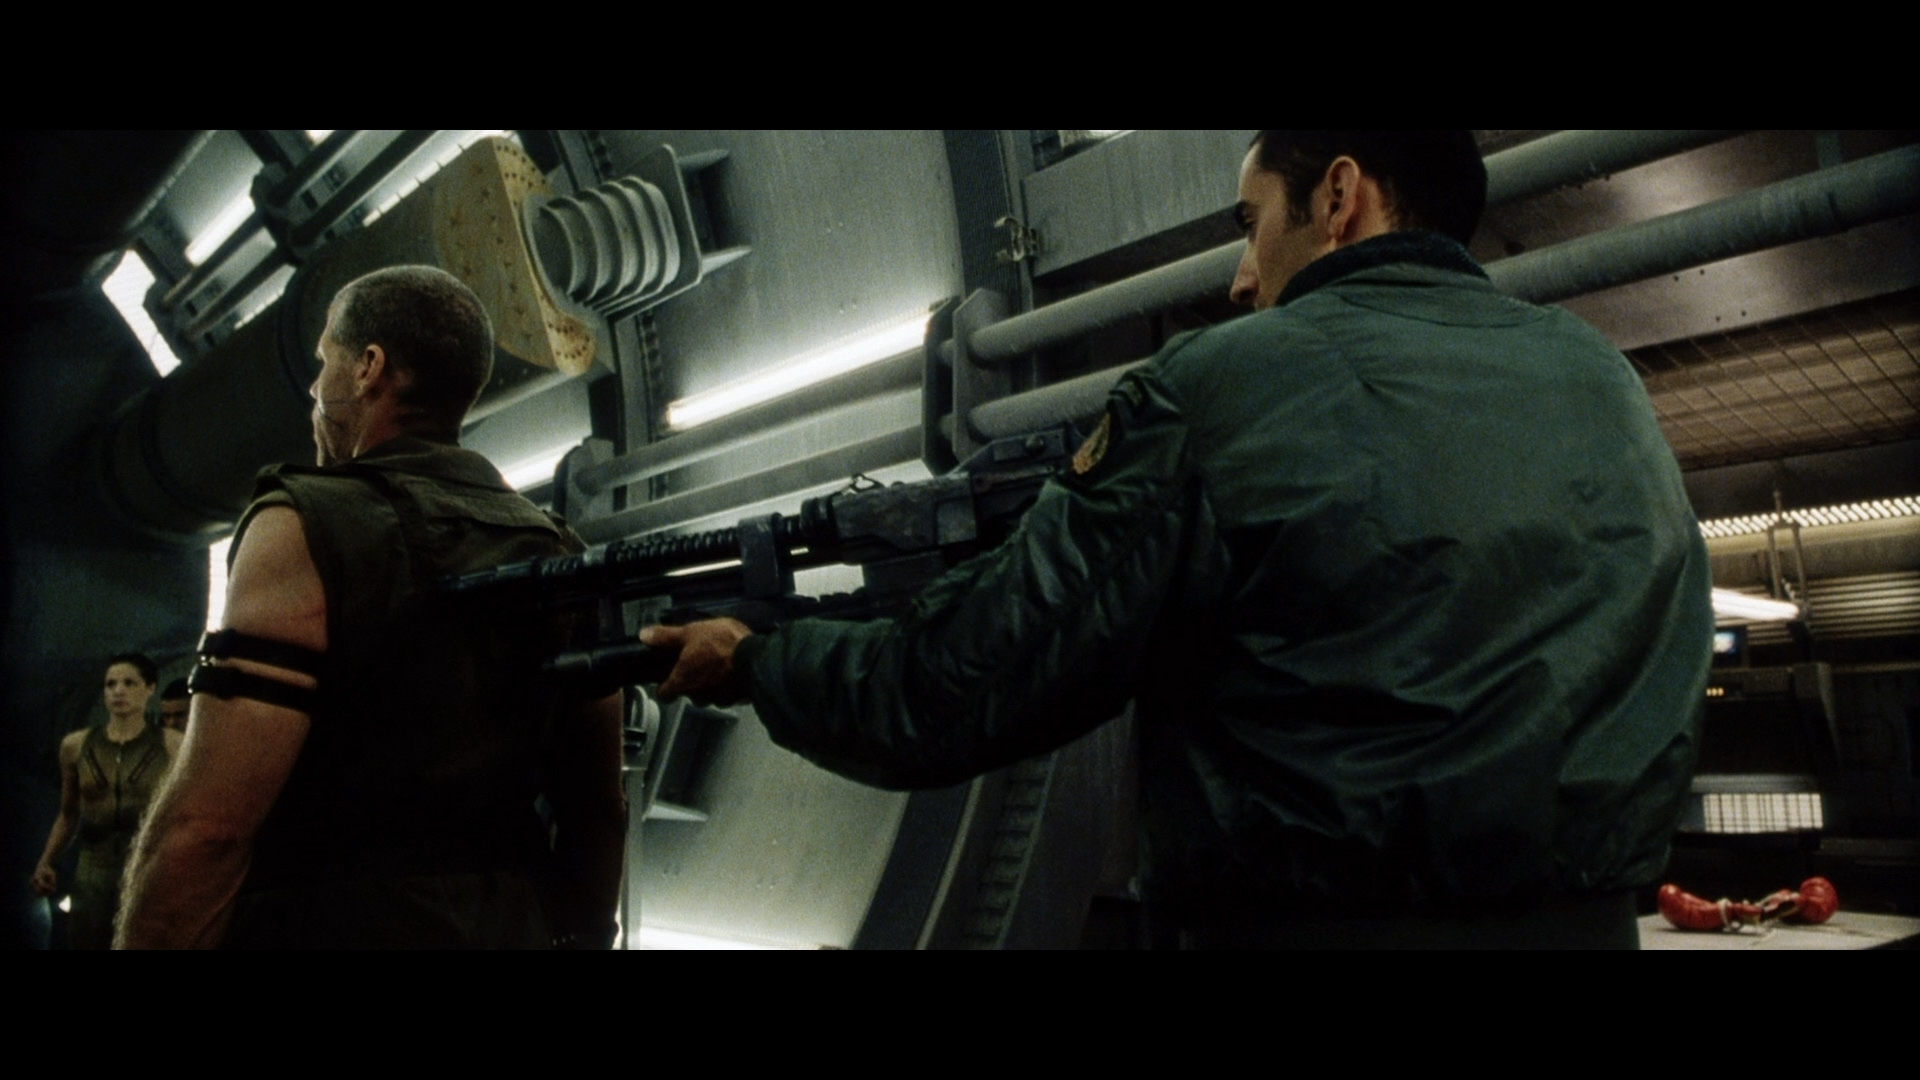 ALIEN RESURRECTION (1997) - Light-Up AR-2 Rifle - Image 11 of 19